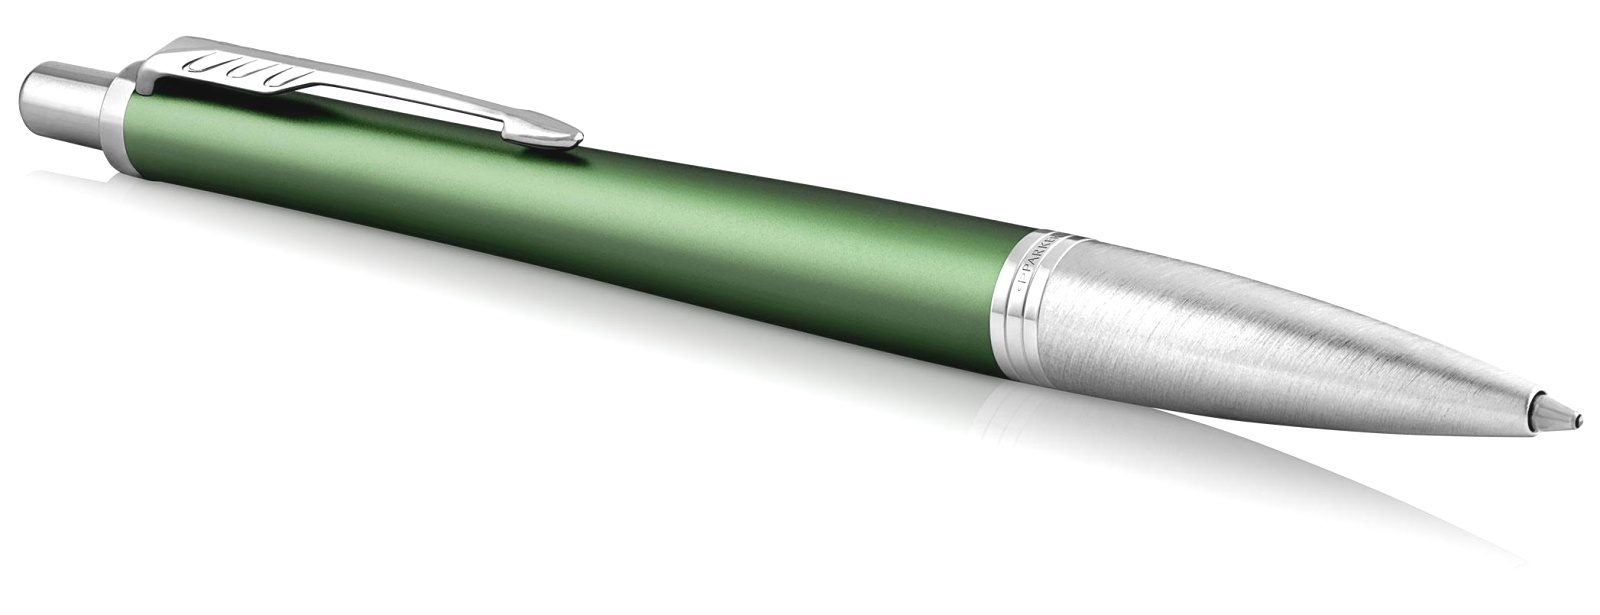 Ручка шариковая Parker Urban Premium K311, Green CT, фото 2